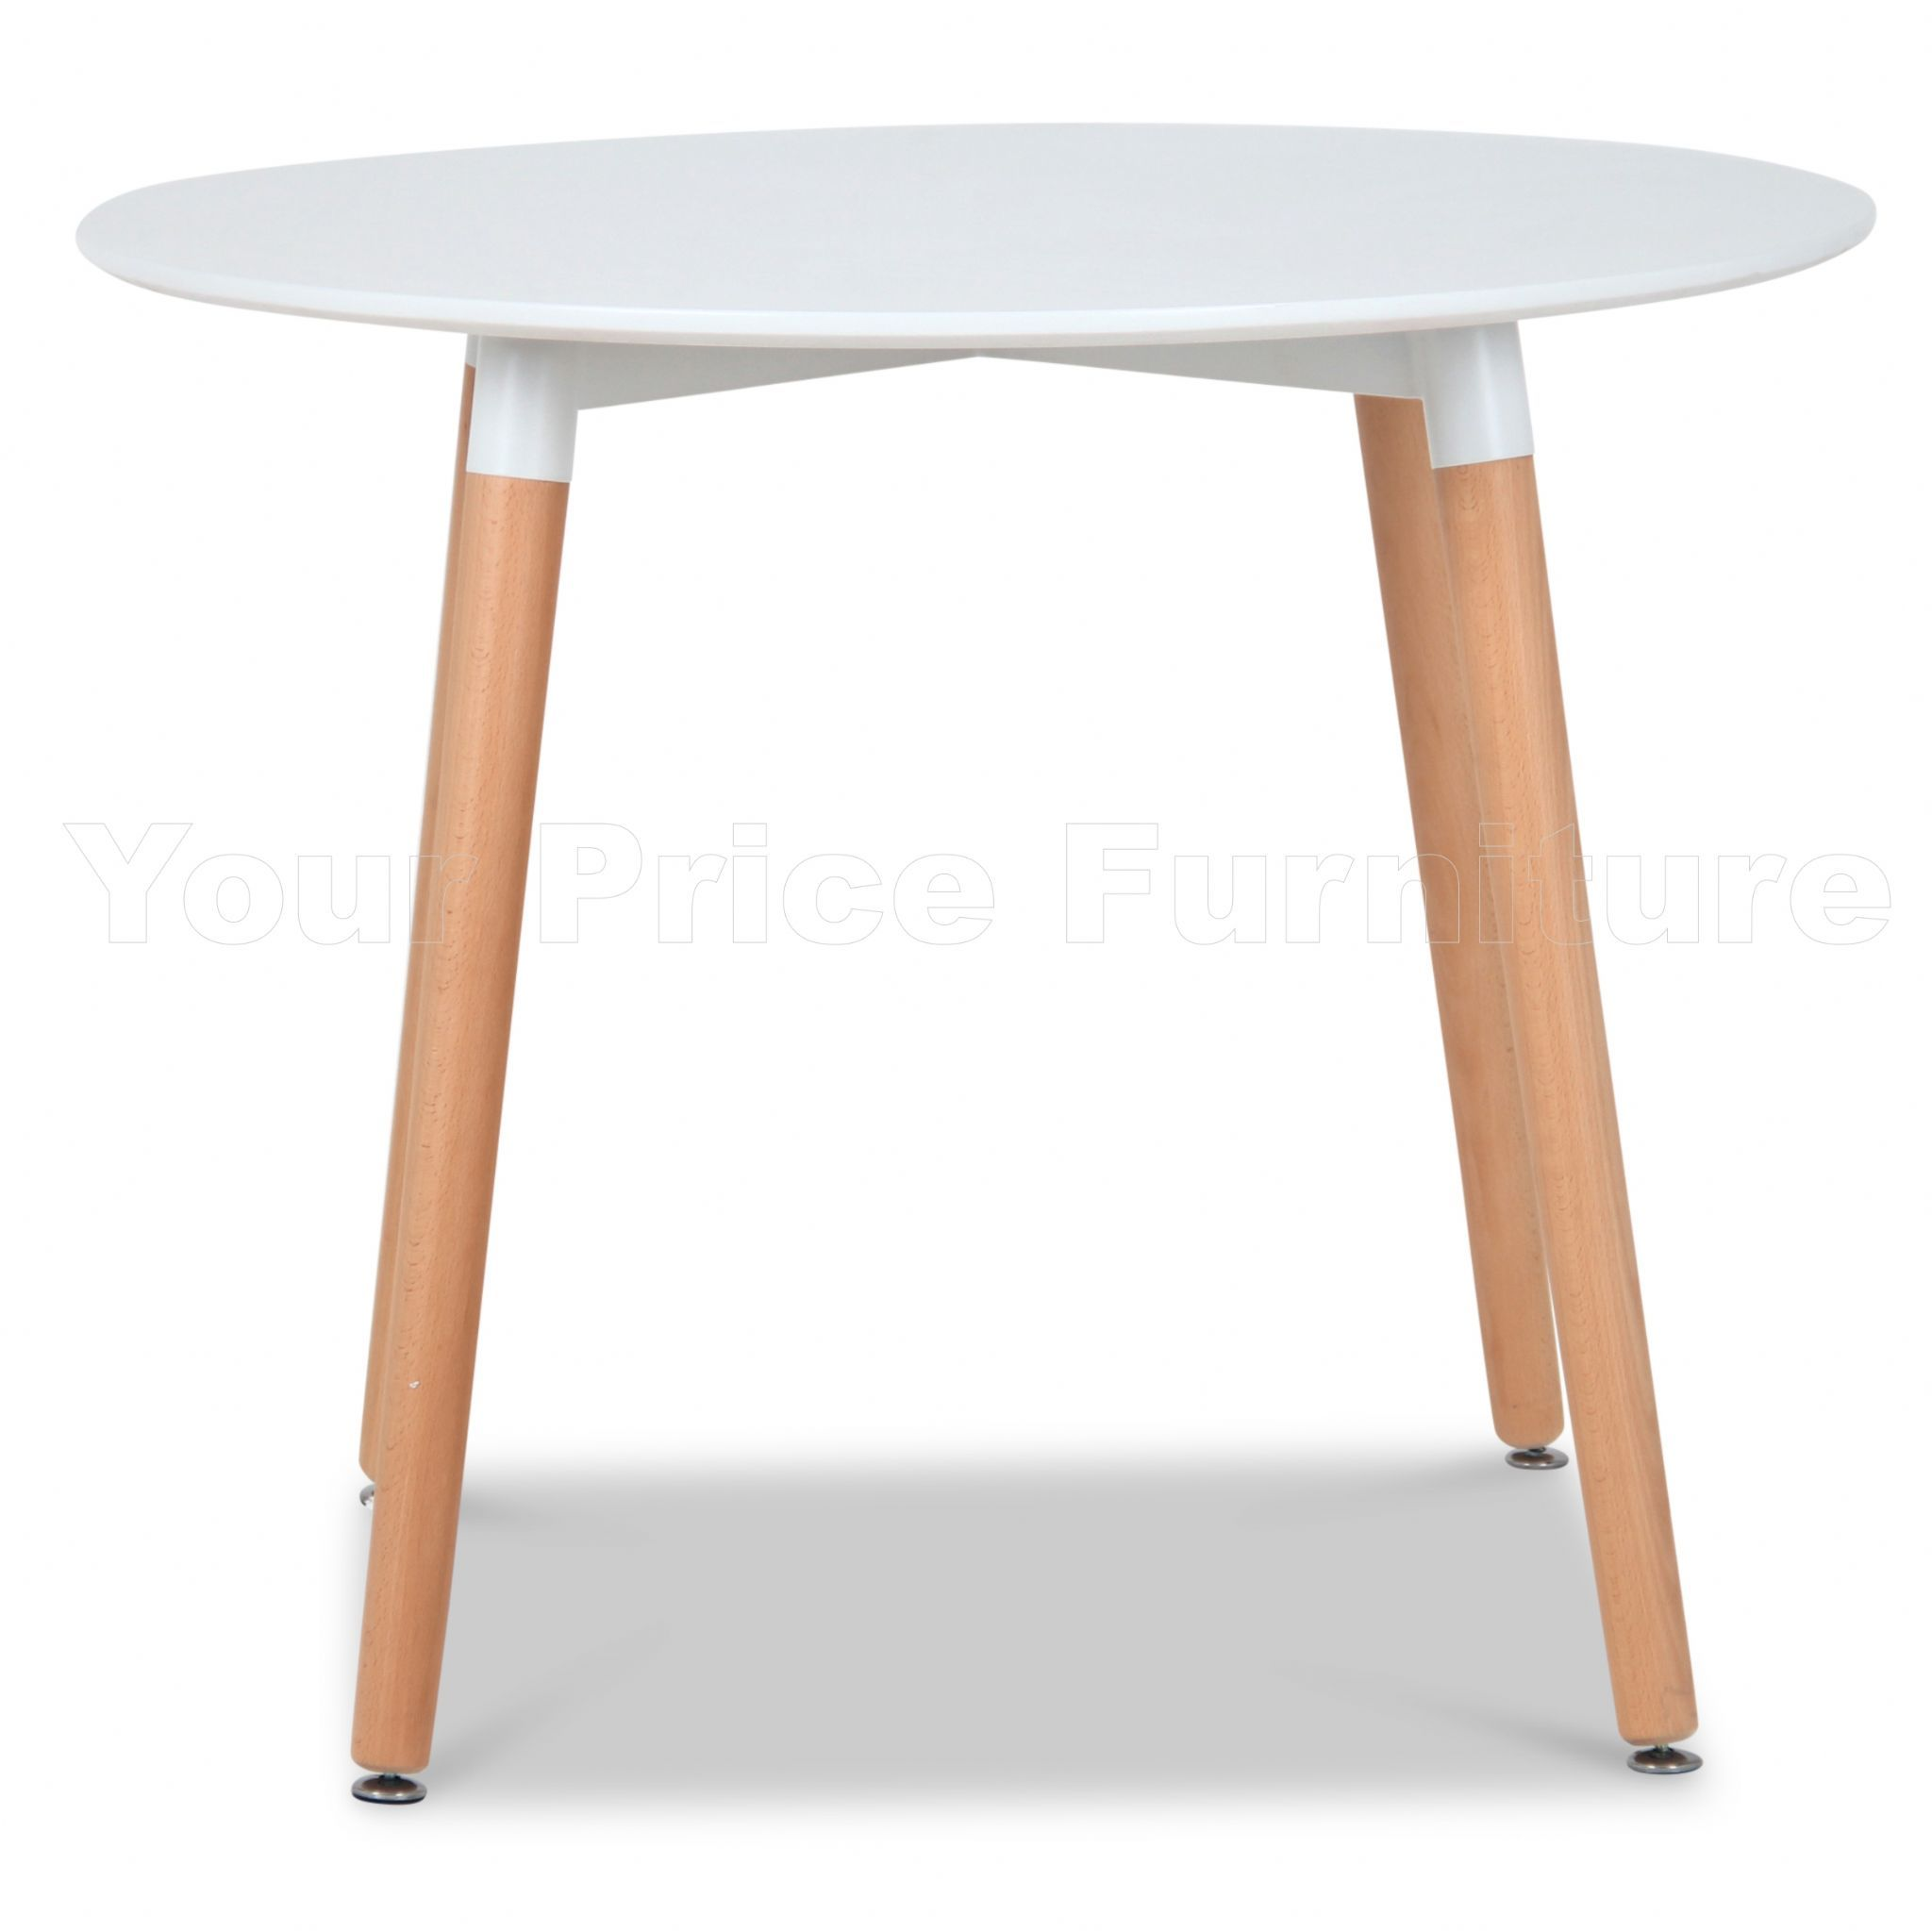 Eiffel designer dining table round small sale now on your for Small round dining table